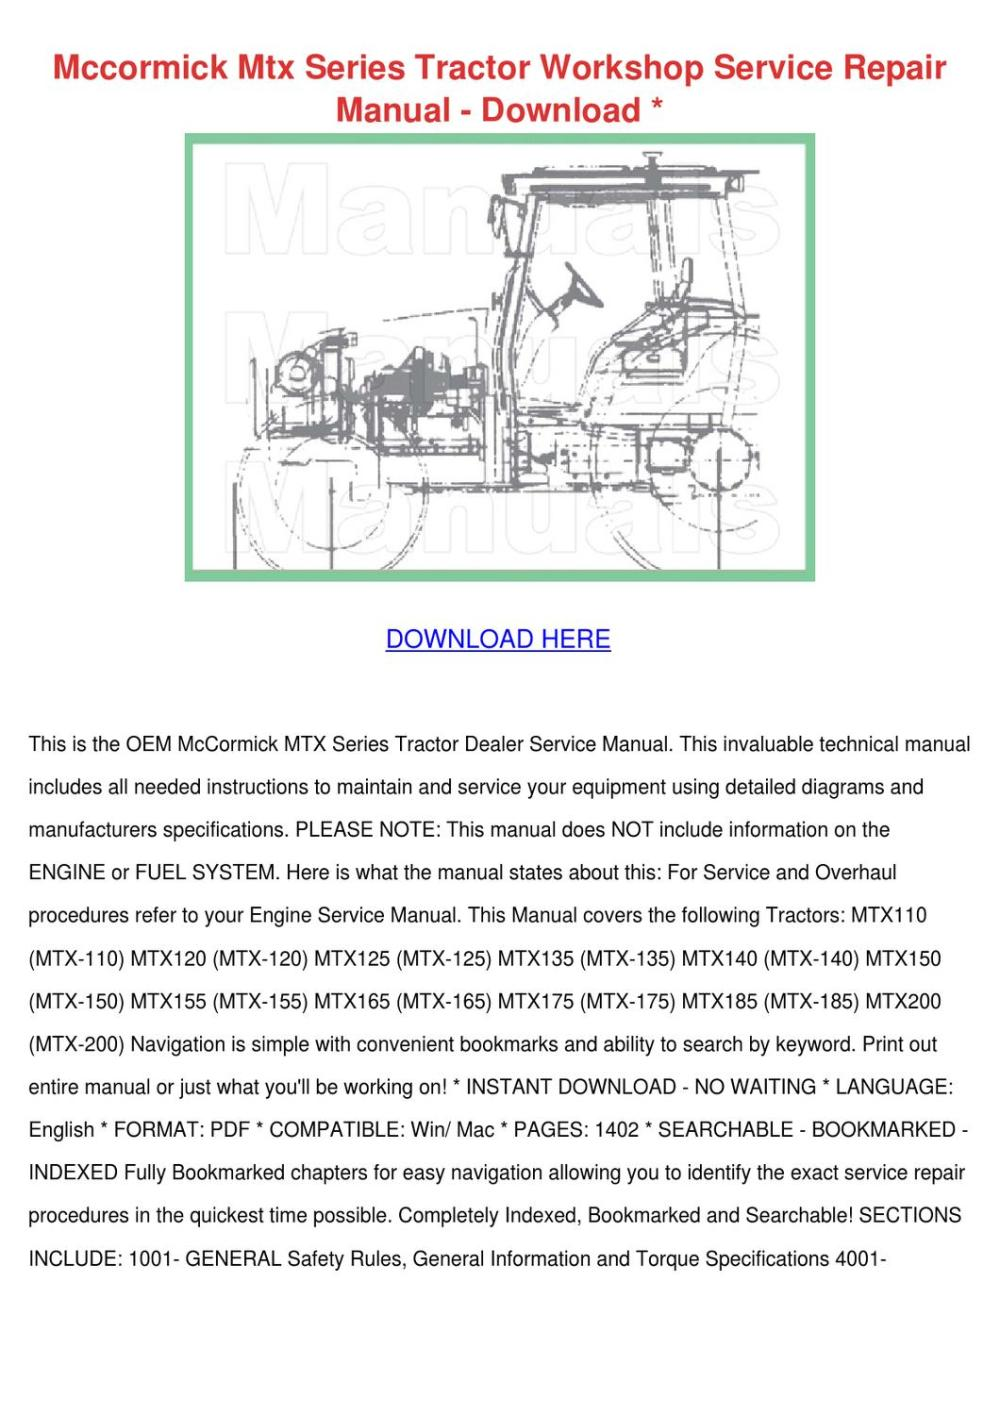 medium resolution of mccormick mtx series tractor workshop service by adrianne walbright issuu